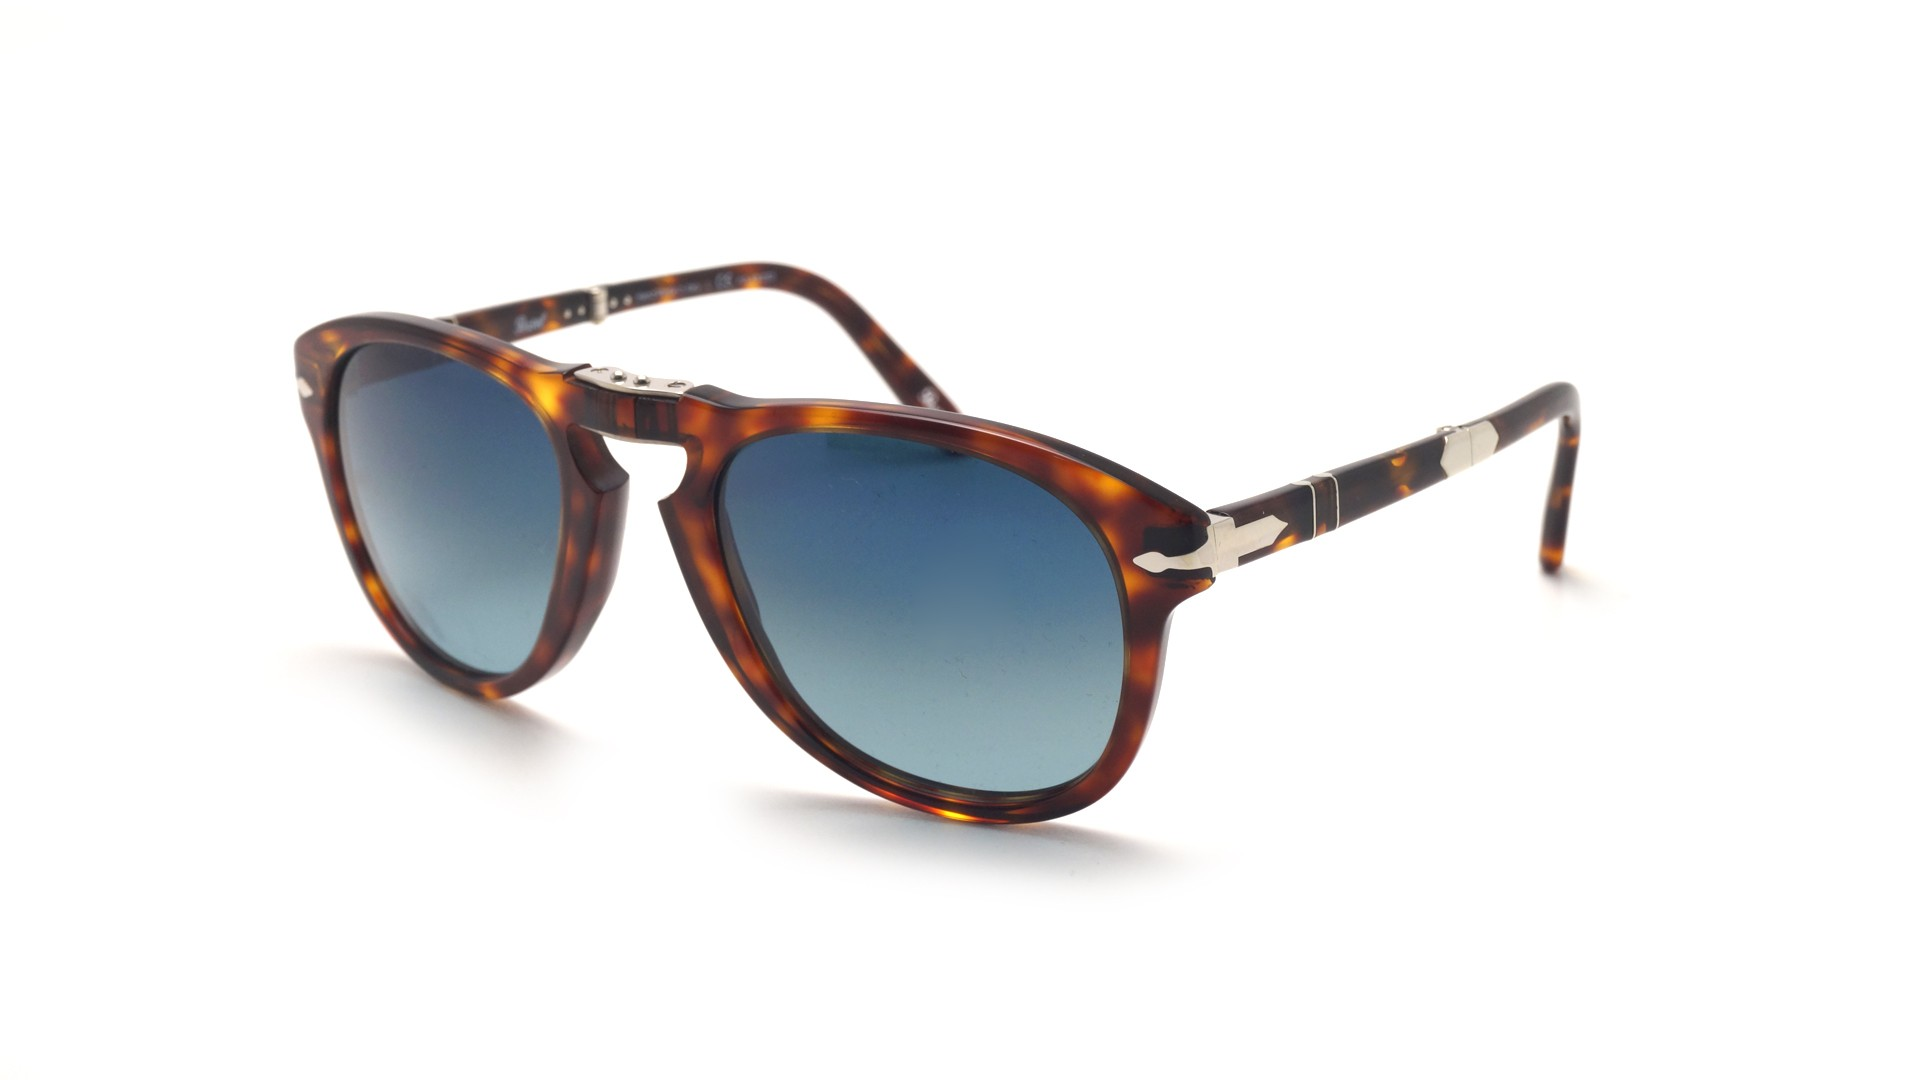 af208db491c9 Sunglasses Persol Steve Mcqueen Tortoise PO0714SM 24/S3 52-21 Medium Folding  Polarized Gradient